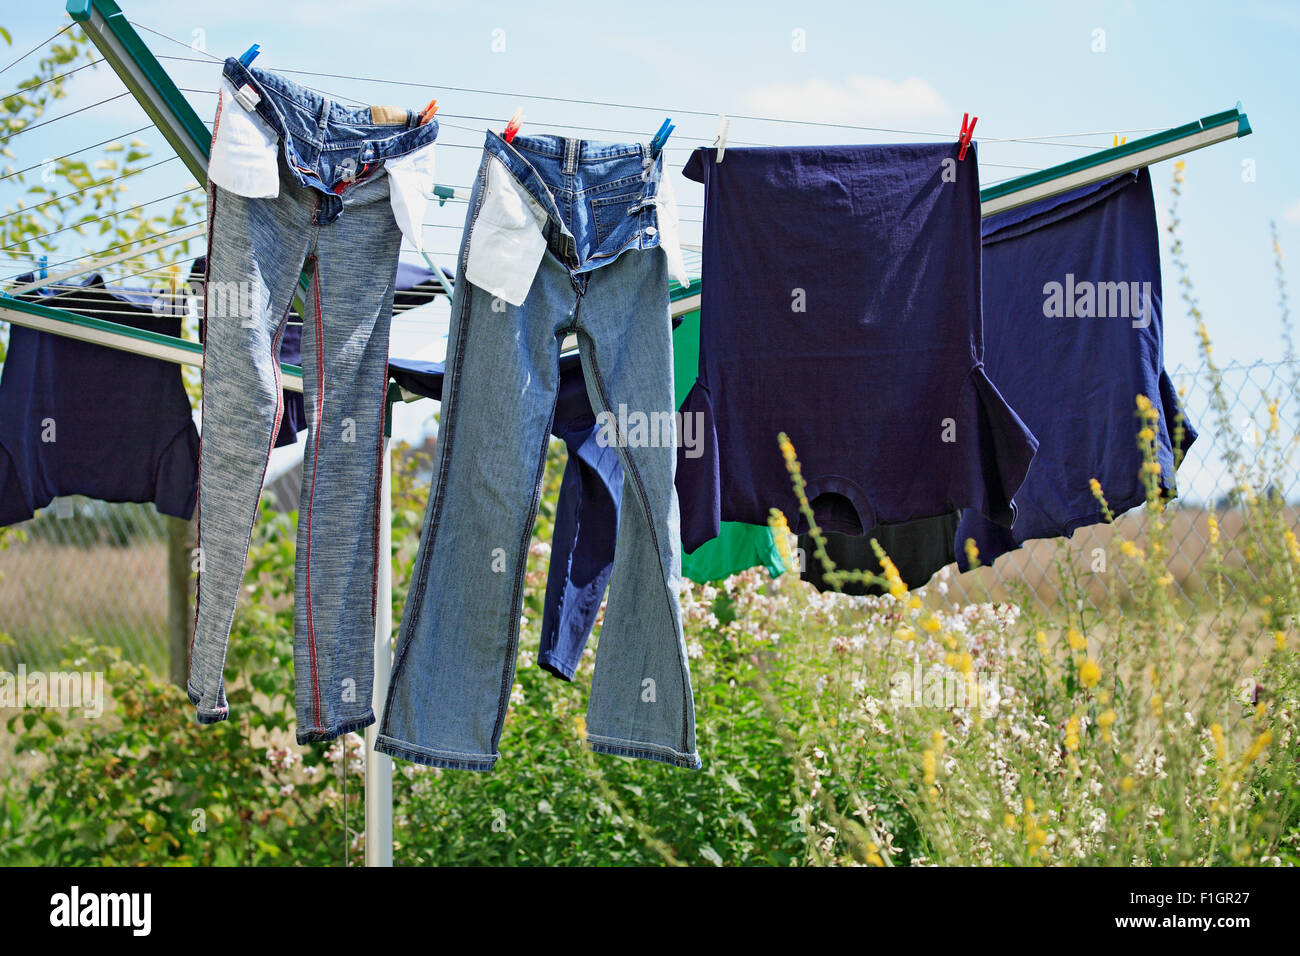 Laundry stand in the garden - Stock Image